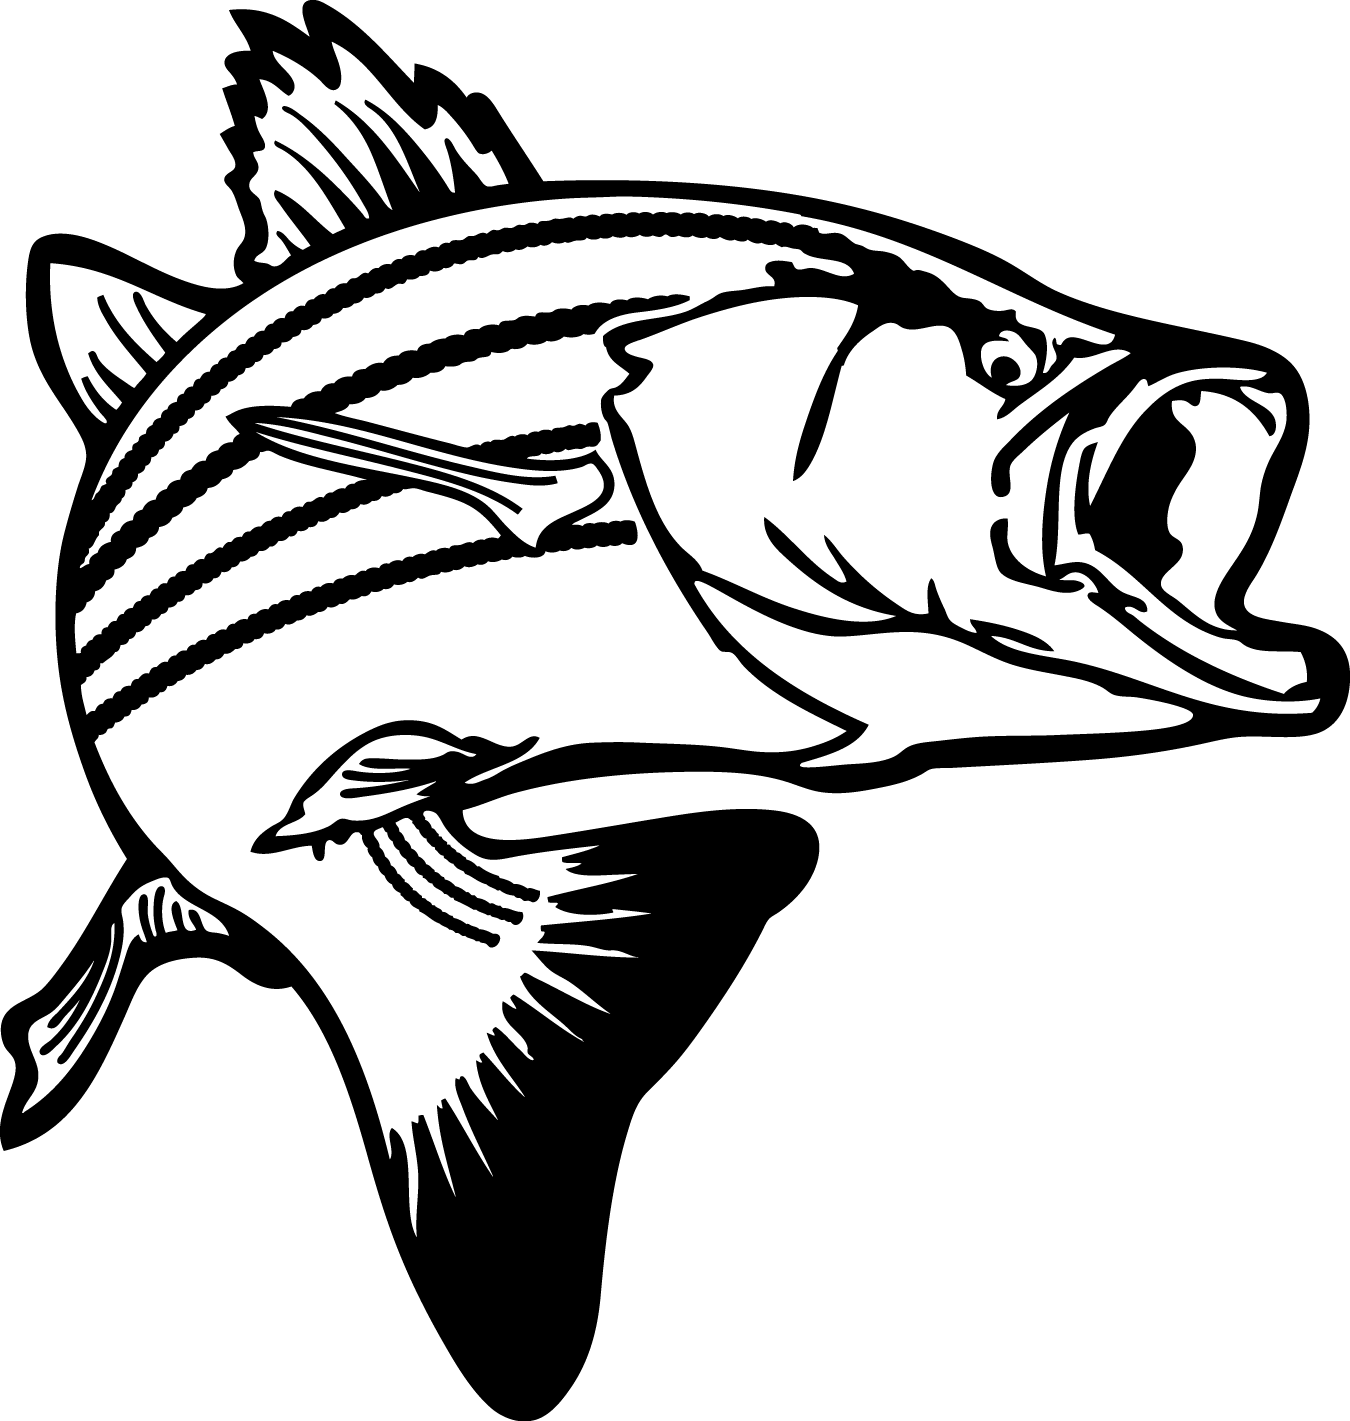 Simple bass clipart black and white banner black and white Raw Fish Clipart | Free download best Raw Fish Clipart on ClipArtMag.com banner black and white